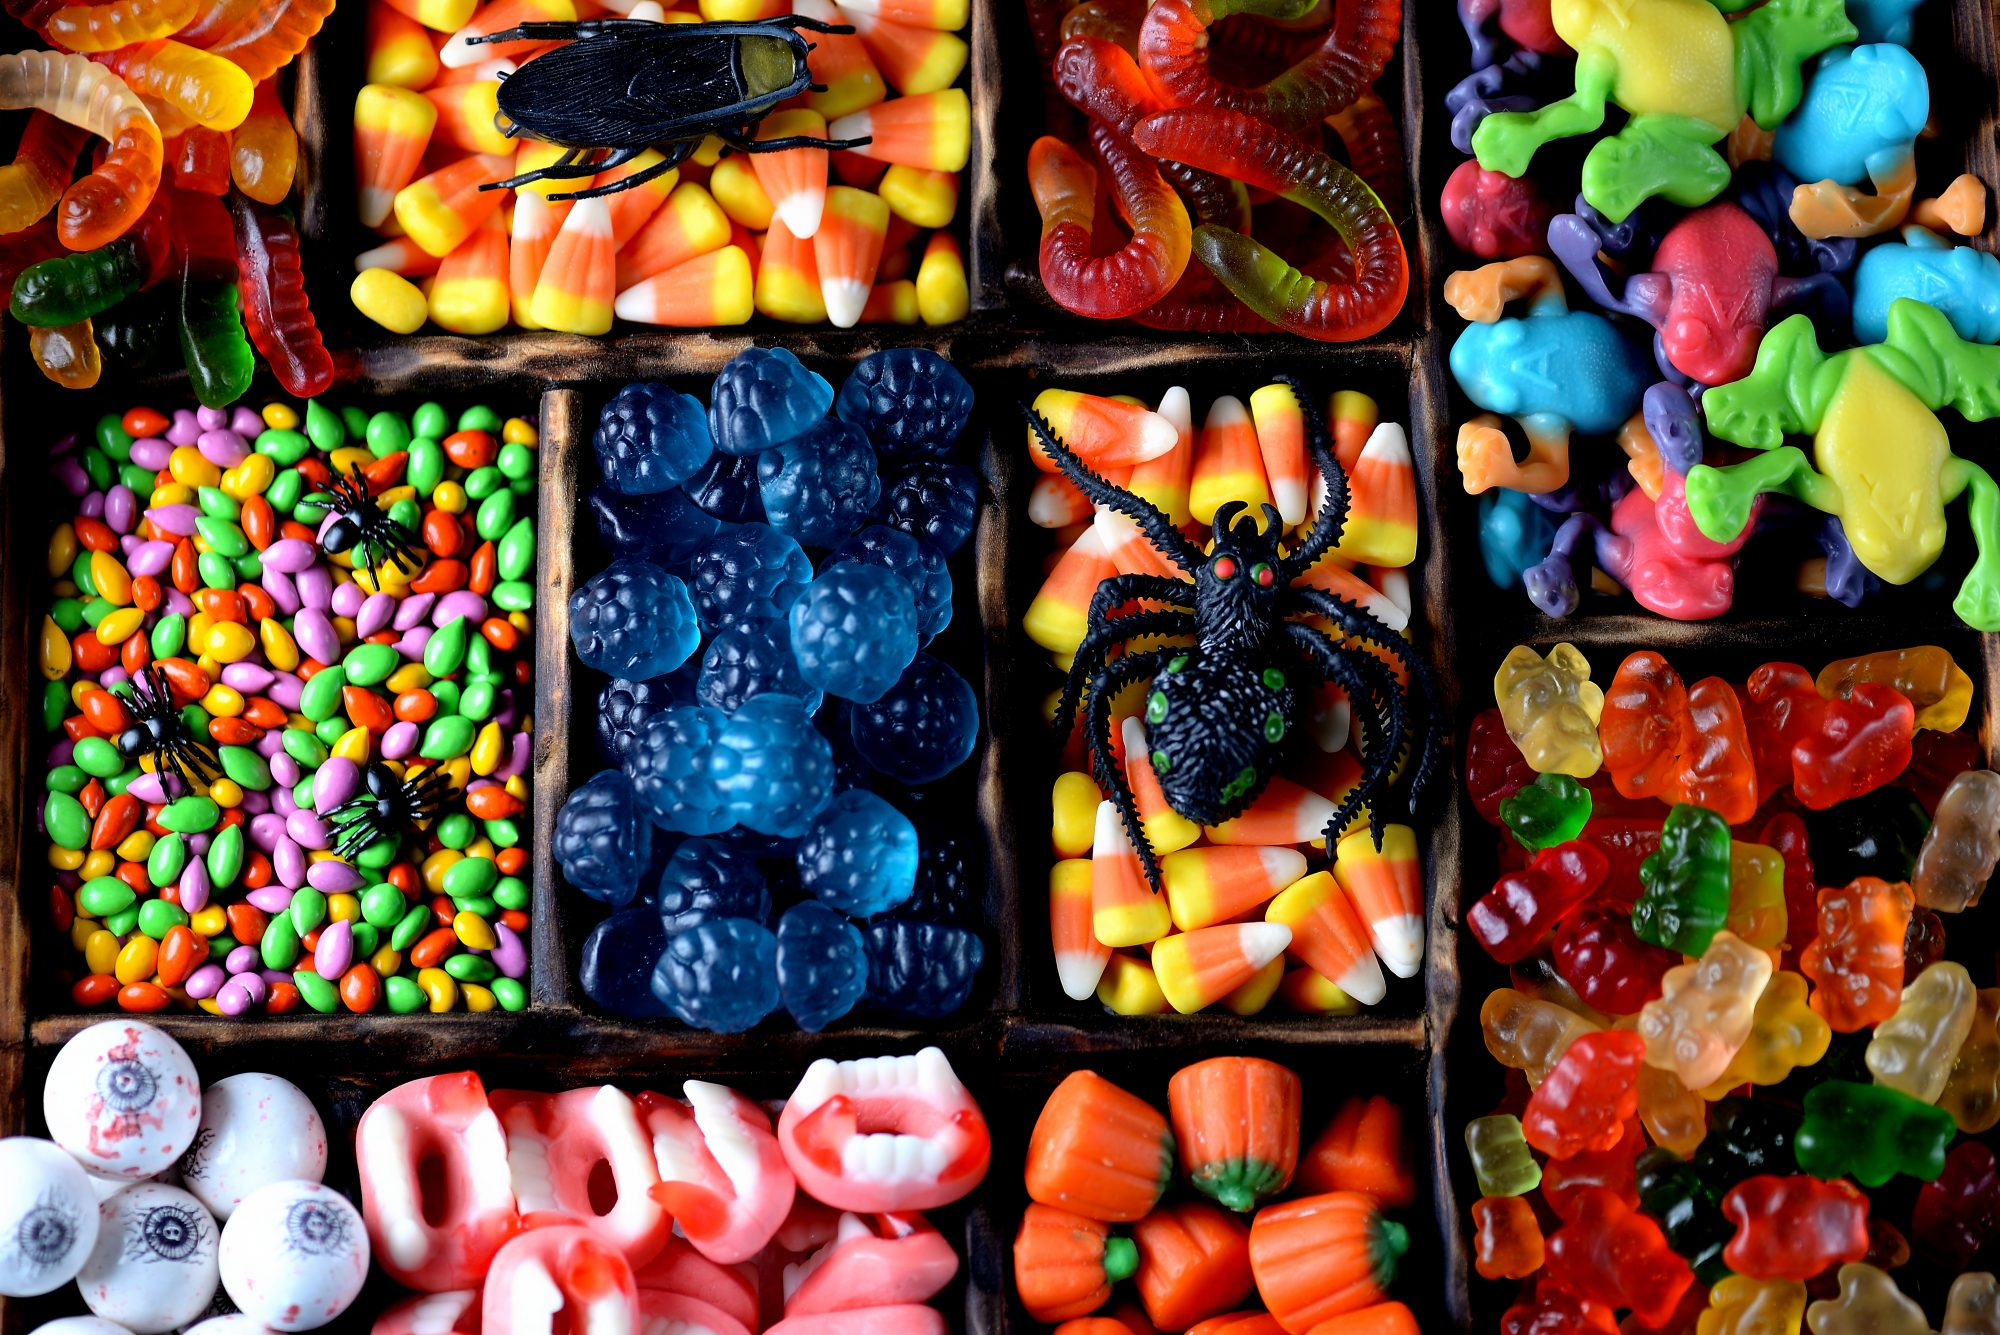 Different kinds of candy together